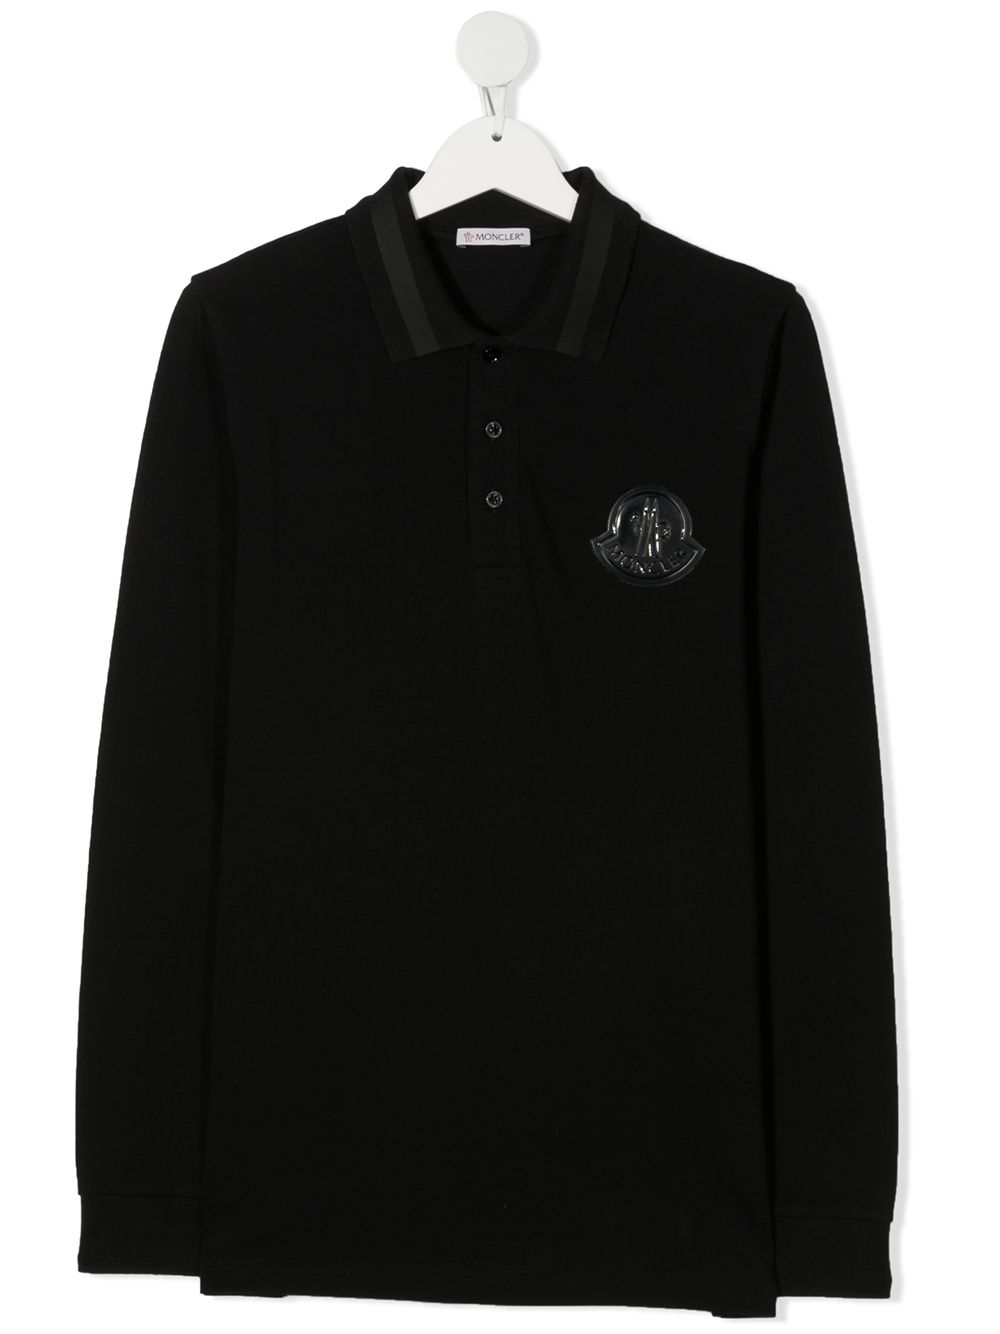 Moncler Enfant fine knit polo shirt - Black von Moncler Enfant